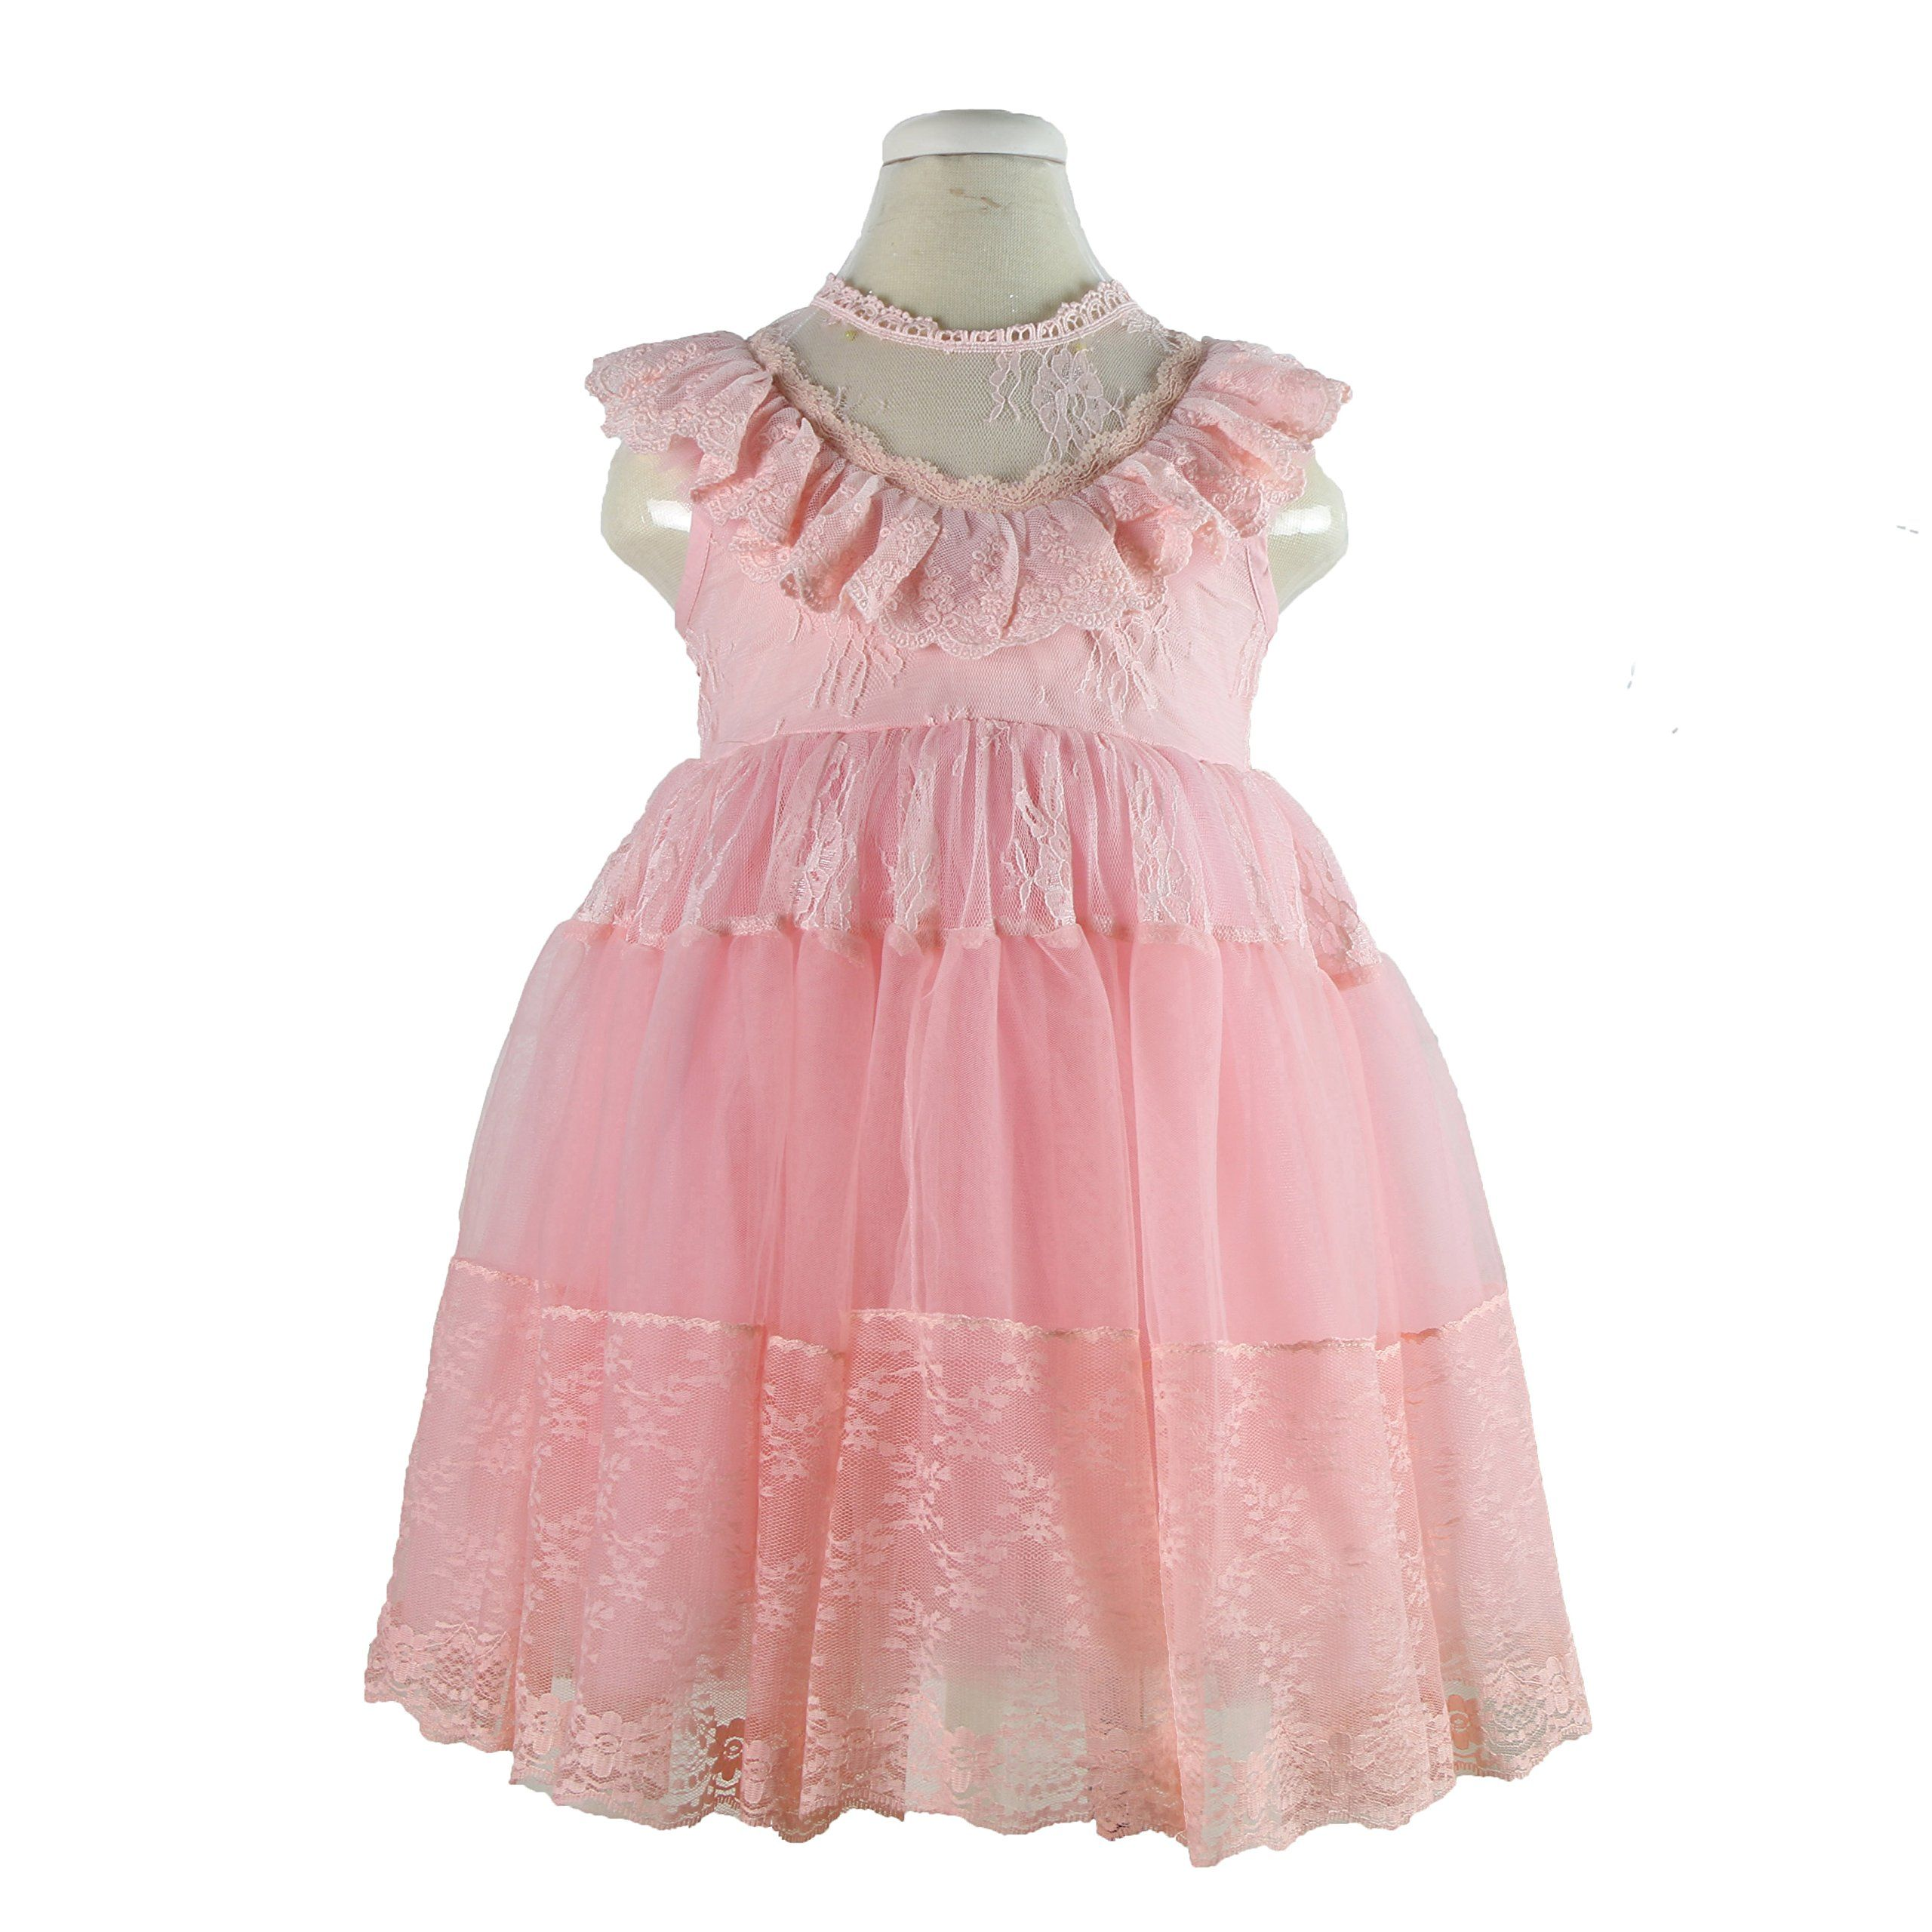 Girls Tutu Lace Dress Pink Ruffles Princess Party Dresses 5t Size 2 3 4 5 7 For1 7 Years Old Baby Girls See Through Nec Lace Pink Dress Lace Dress Dresses [ 2560 x 2560 Pixel ]